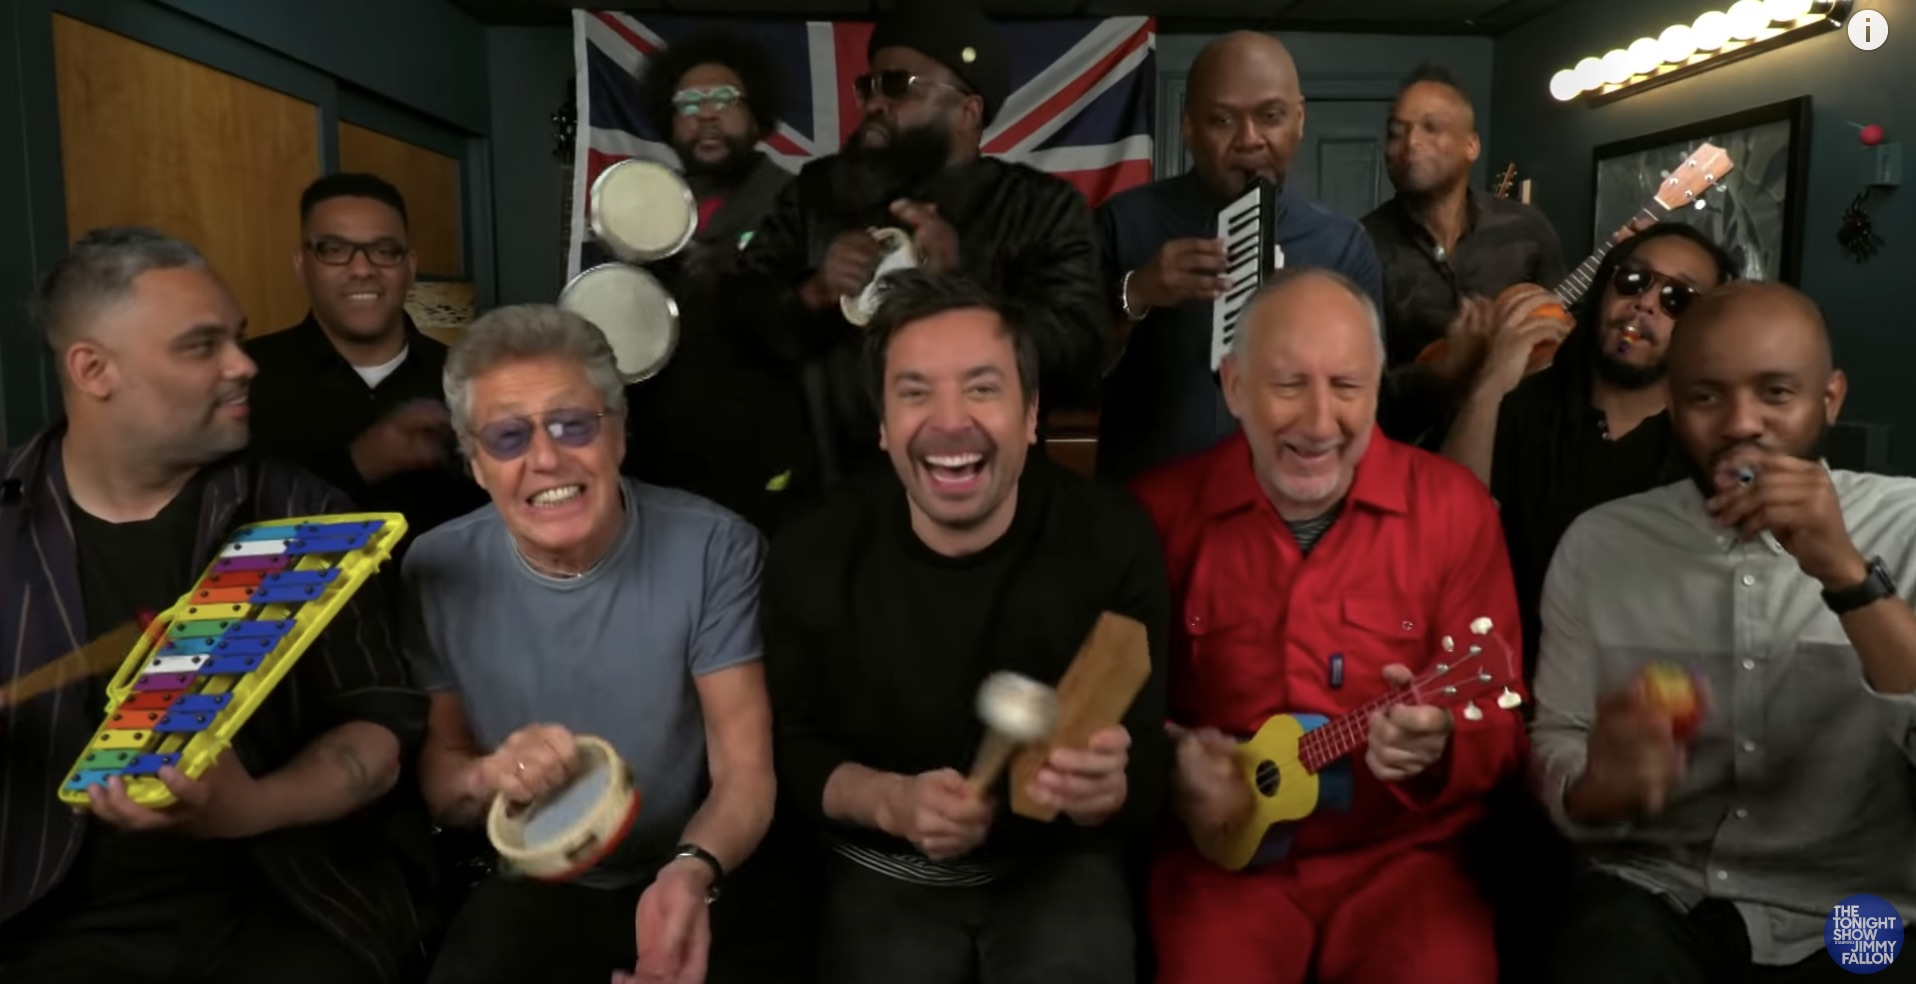 The Who classroom instruments jimmy fallon Robert Daltry Pete Townshend